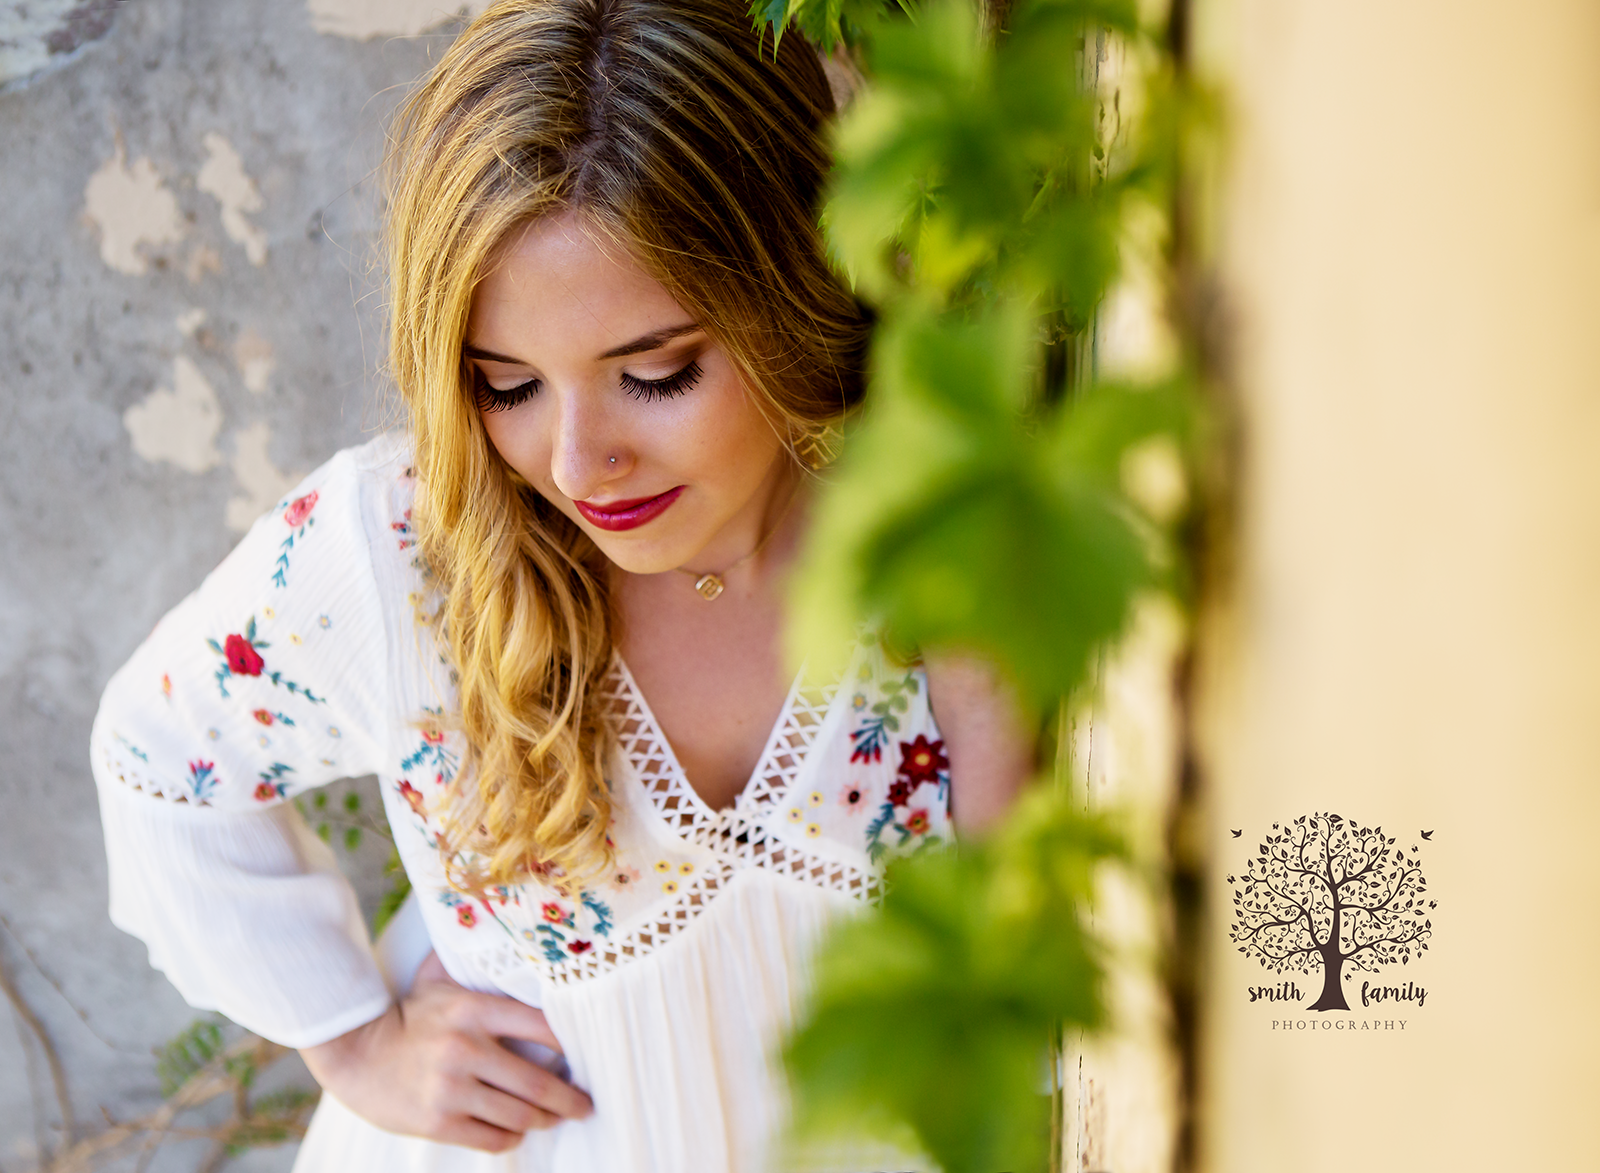 """Anna made everything absolutely perfect!!!! She had a ton of ideas and was open to the few ideas/props we brought for the Senior Photo shoot. I am in love with every single shot taken. I highly recommend Anna and will be using her again in 4 more years for my youngest gradaduatuon pictures."" - Laura H."